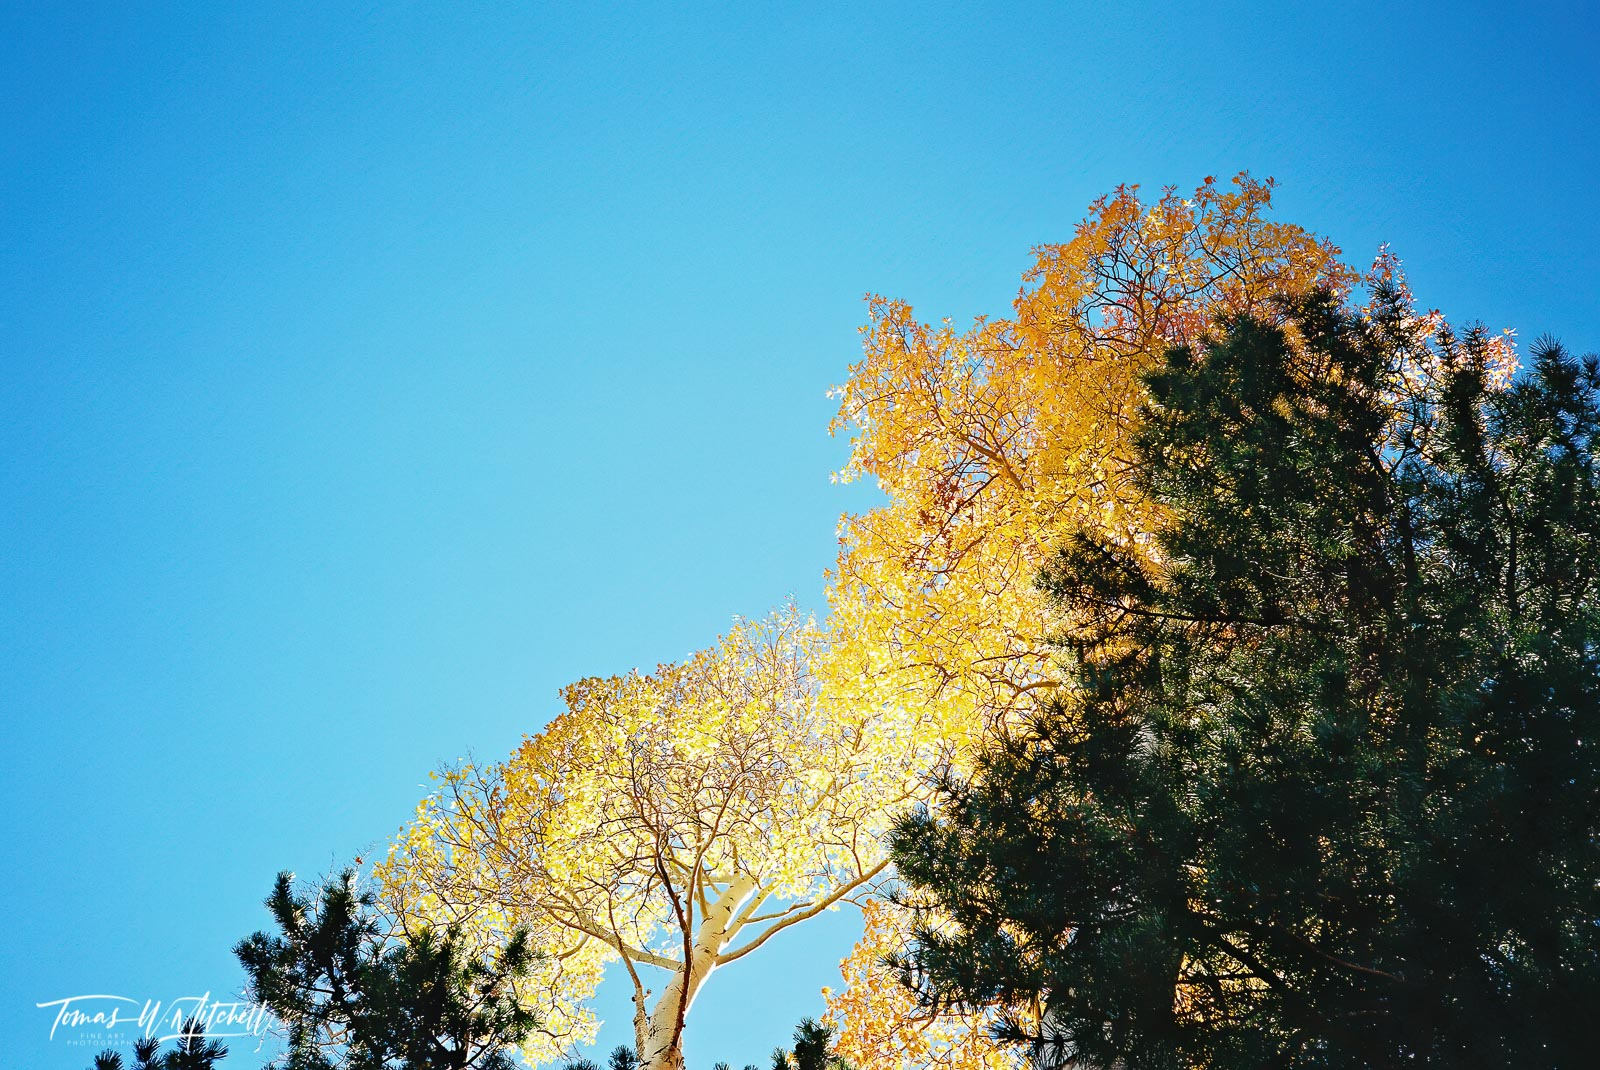 limited edition, fine art, prints photograph, film, utah, wasatch cache national forest, uinta mountains, pentax, colors, contrast, blue sky, quaking aspen, pine tree, blue, yellow, green,, photo